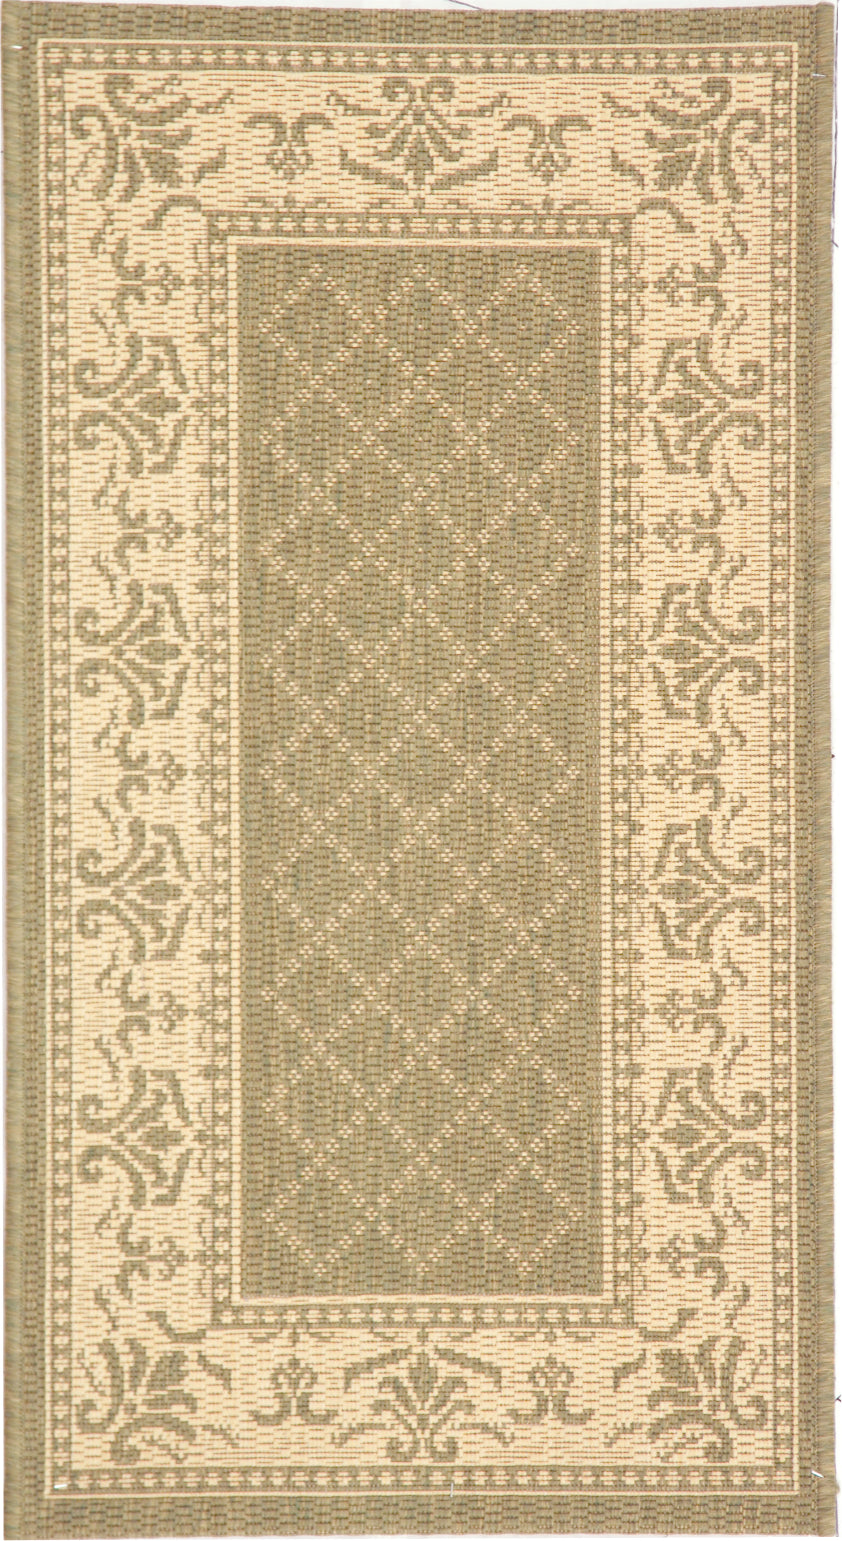 Safavieh Courtyard CY0901 Olive/Natural Area Rug main image